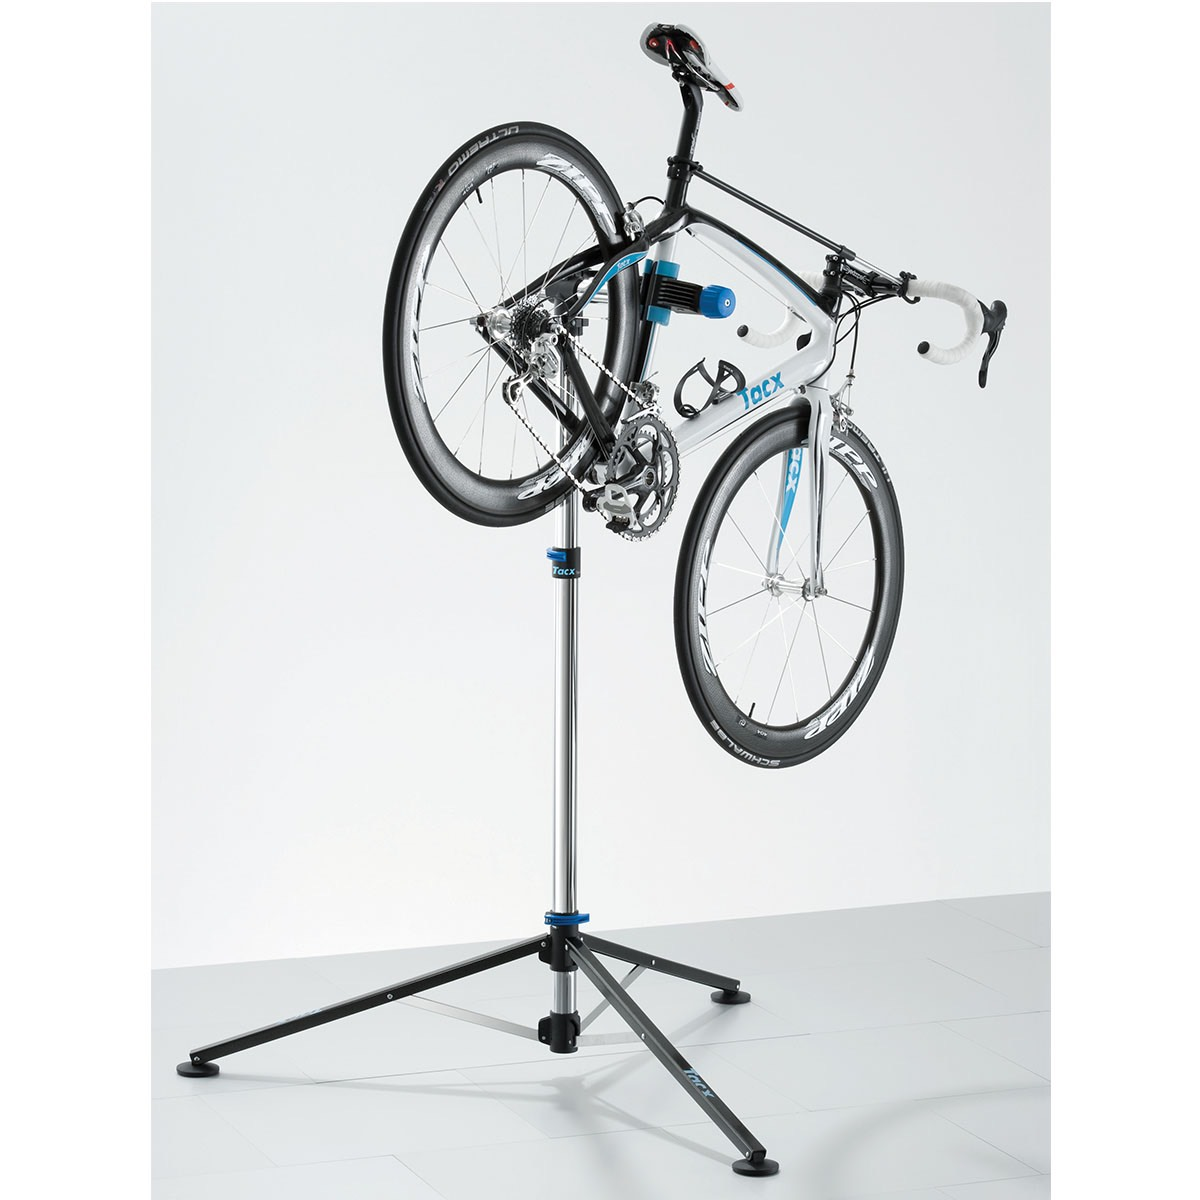 Tacx Cycle Spider Professional Stand